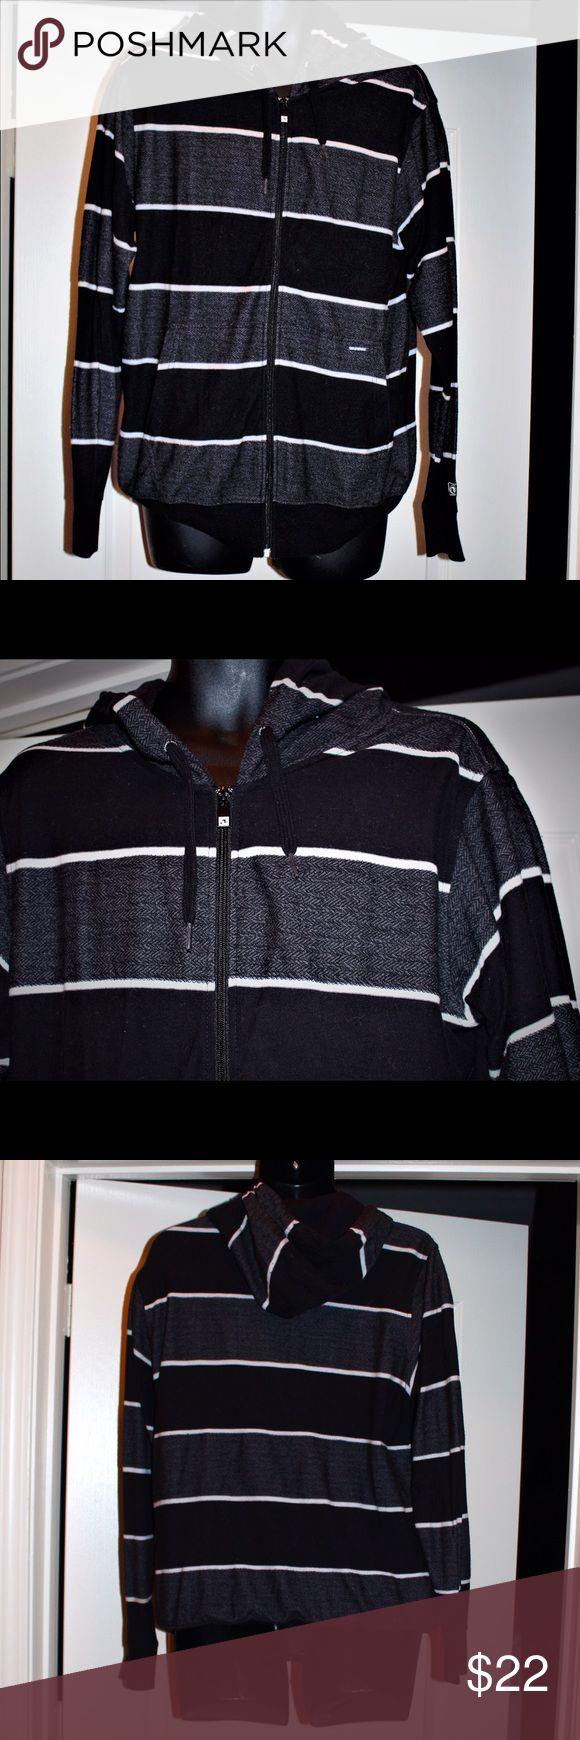 🌊Ocean Current Zip Hoodie Awesome men's full zip black, grey white striped hoodie by ocean current. Light weight and stylish! Bought from jack threads. Size medium. Ocean Current Jackets & Coats Lightweight & Shirt Jackets